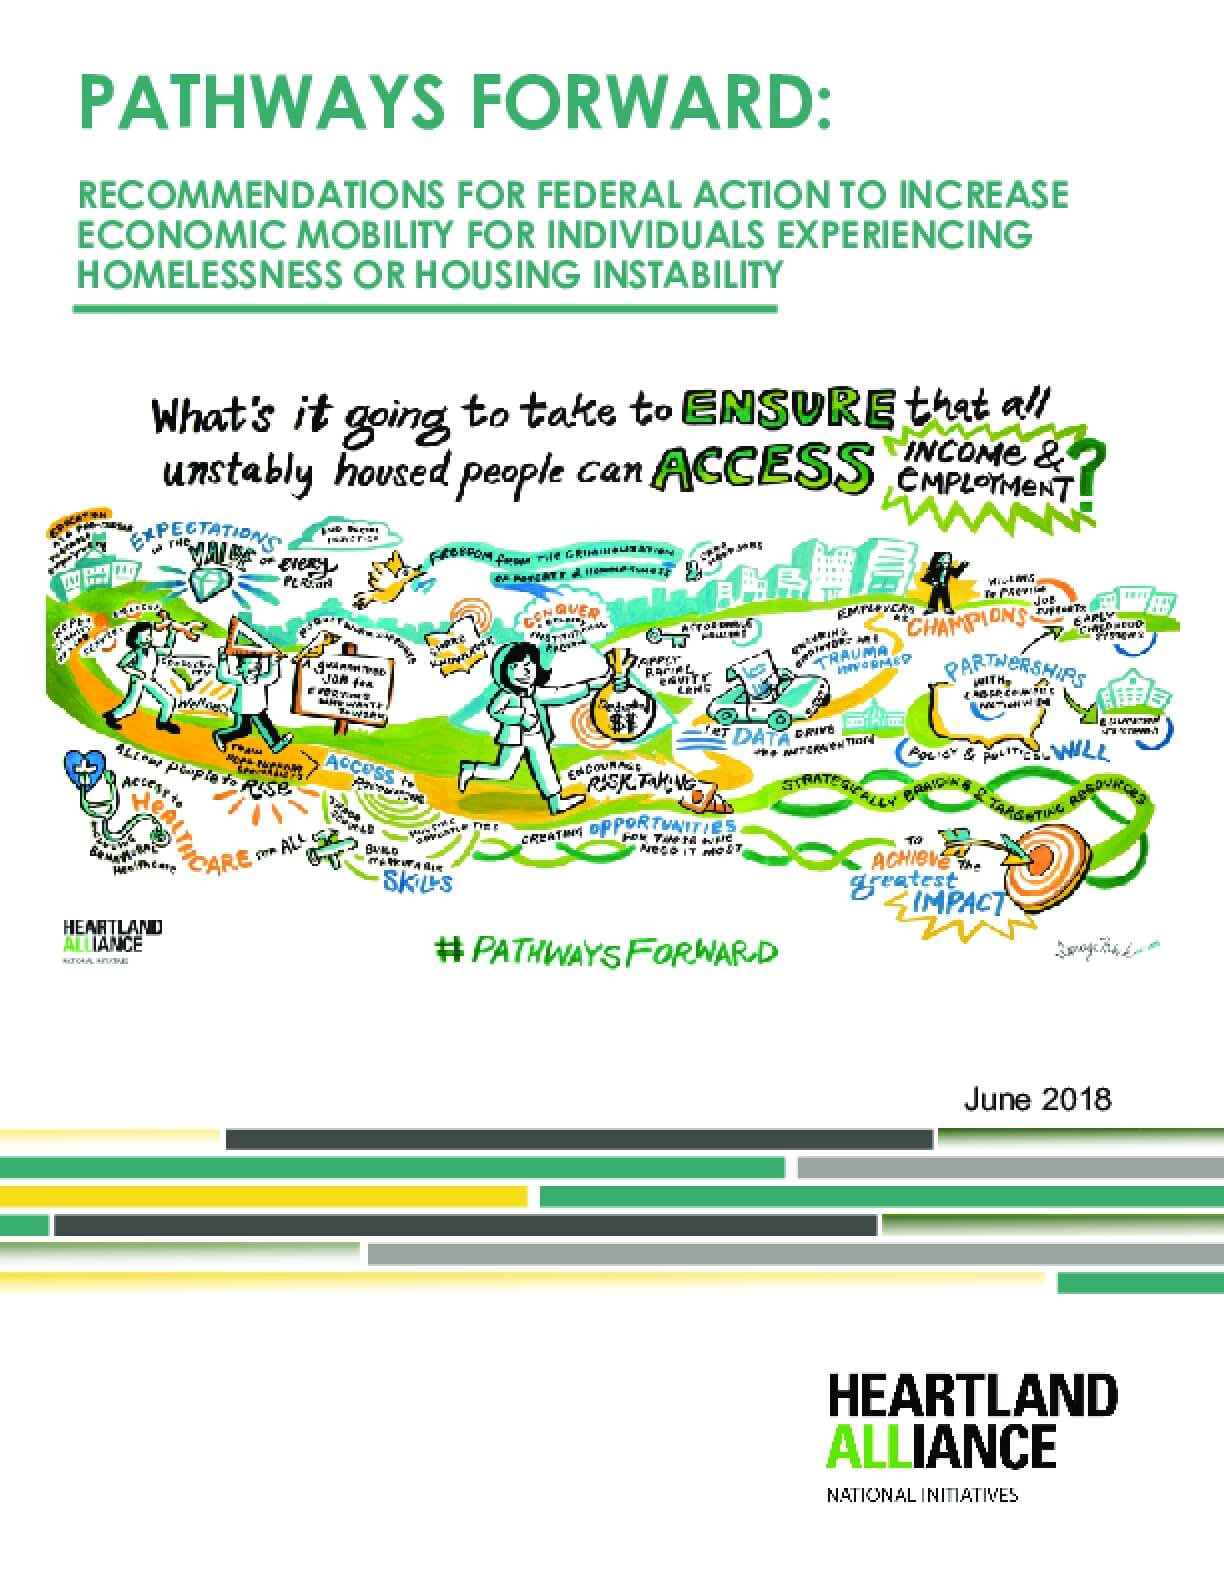 Pathways Forward: Recommendations for Federal Action to Increase Economic Mobility for Individuals Experiencing Homelessness or Housing Instability